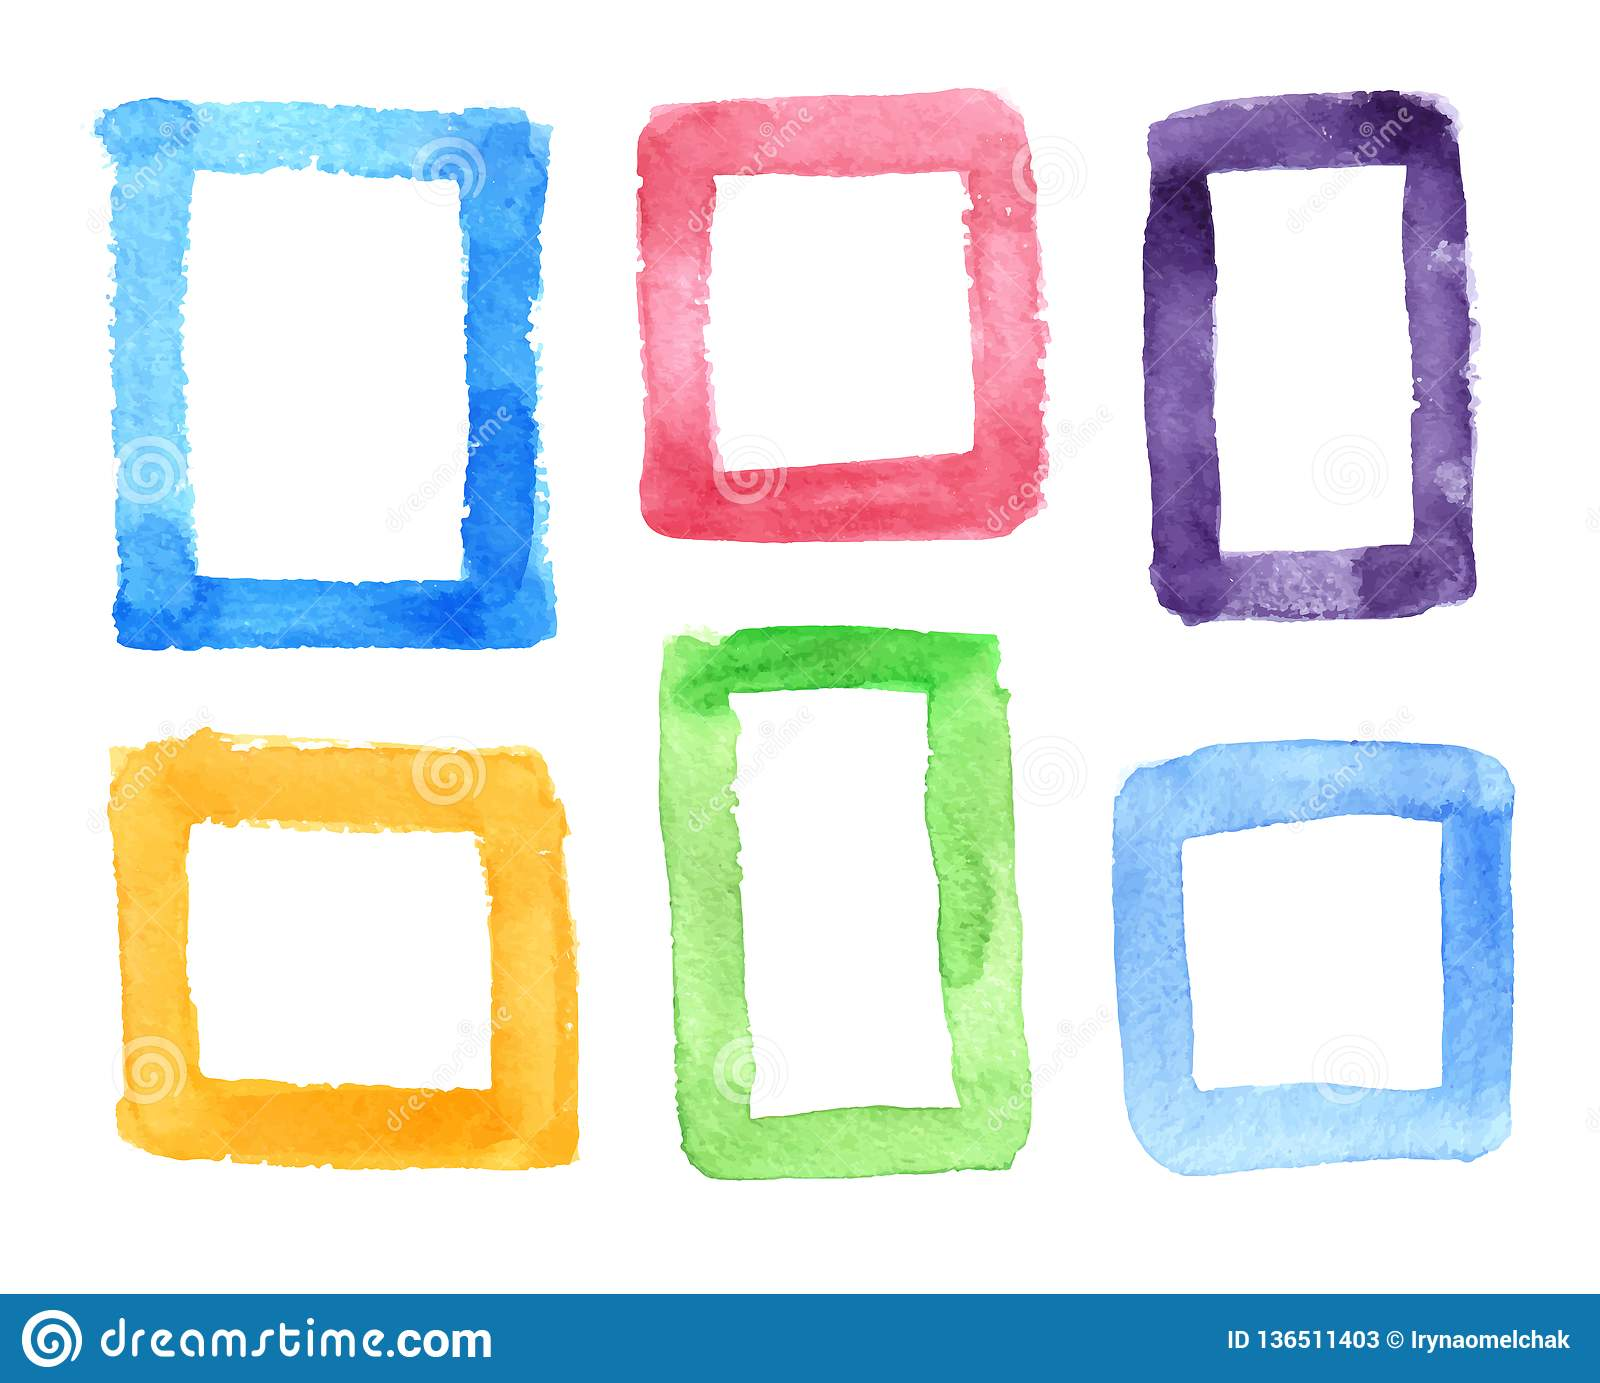 6dc69d32161c Set of colored watercolor frames isolated on a white background. Suitable  for decorating design. More similar stock illustrations